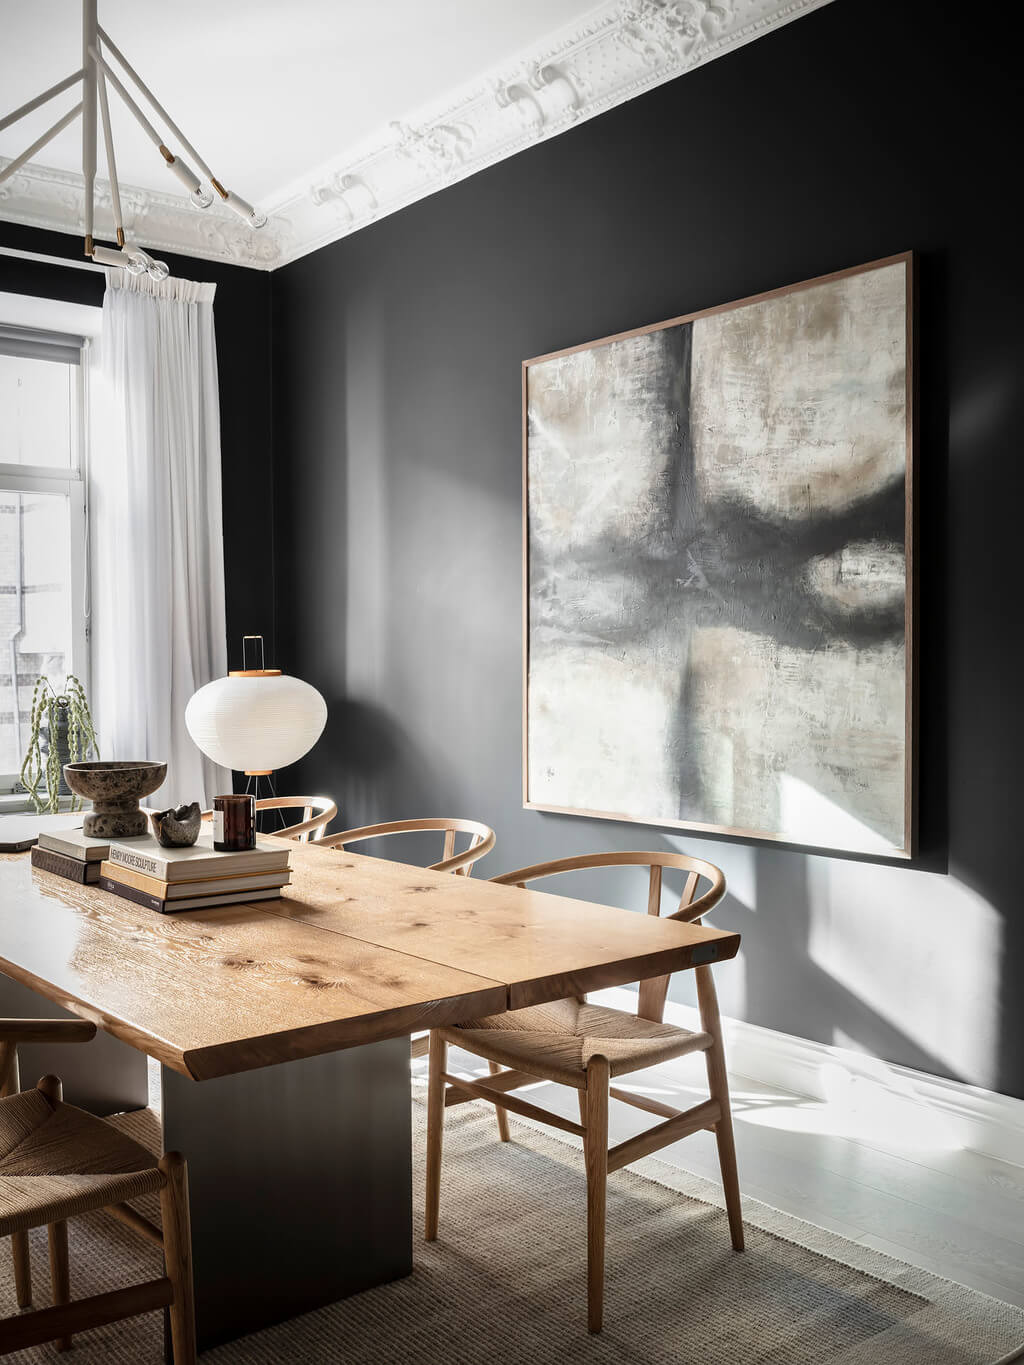 A Black Dining Room in a Stylish Apartment